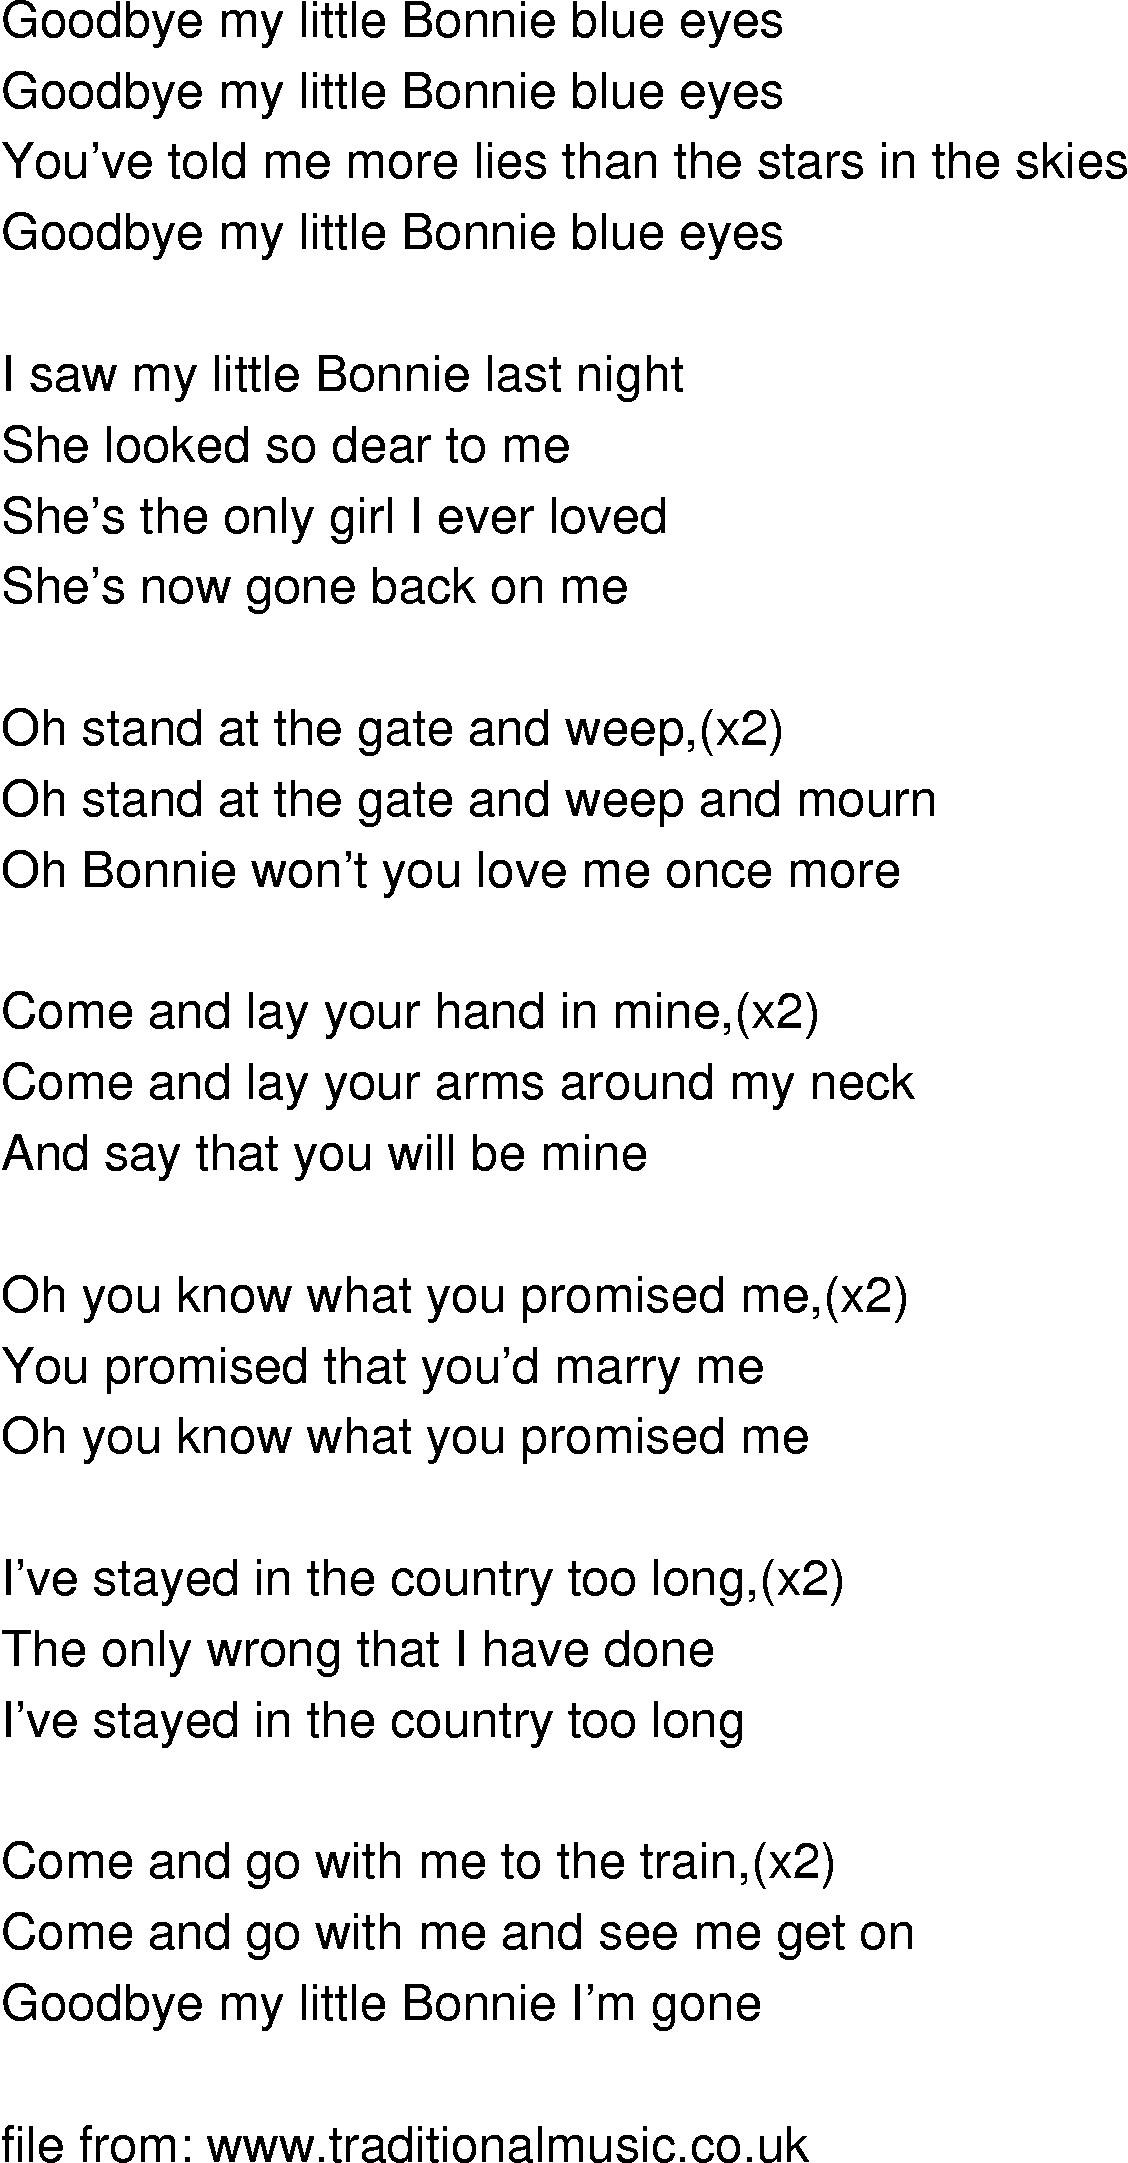 Old Time Song Lyrics Bonnie Blue Eyes